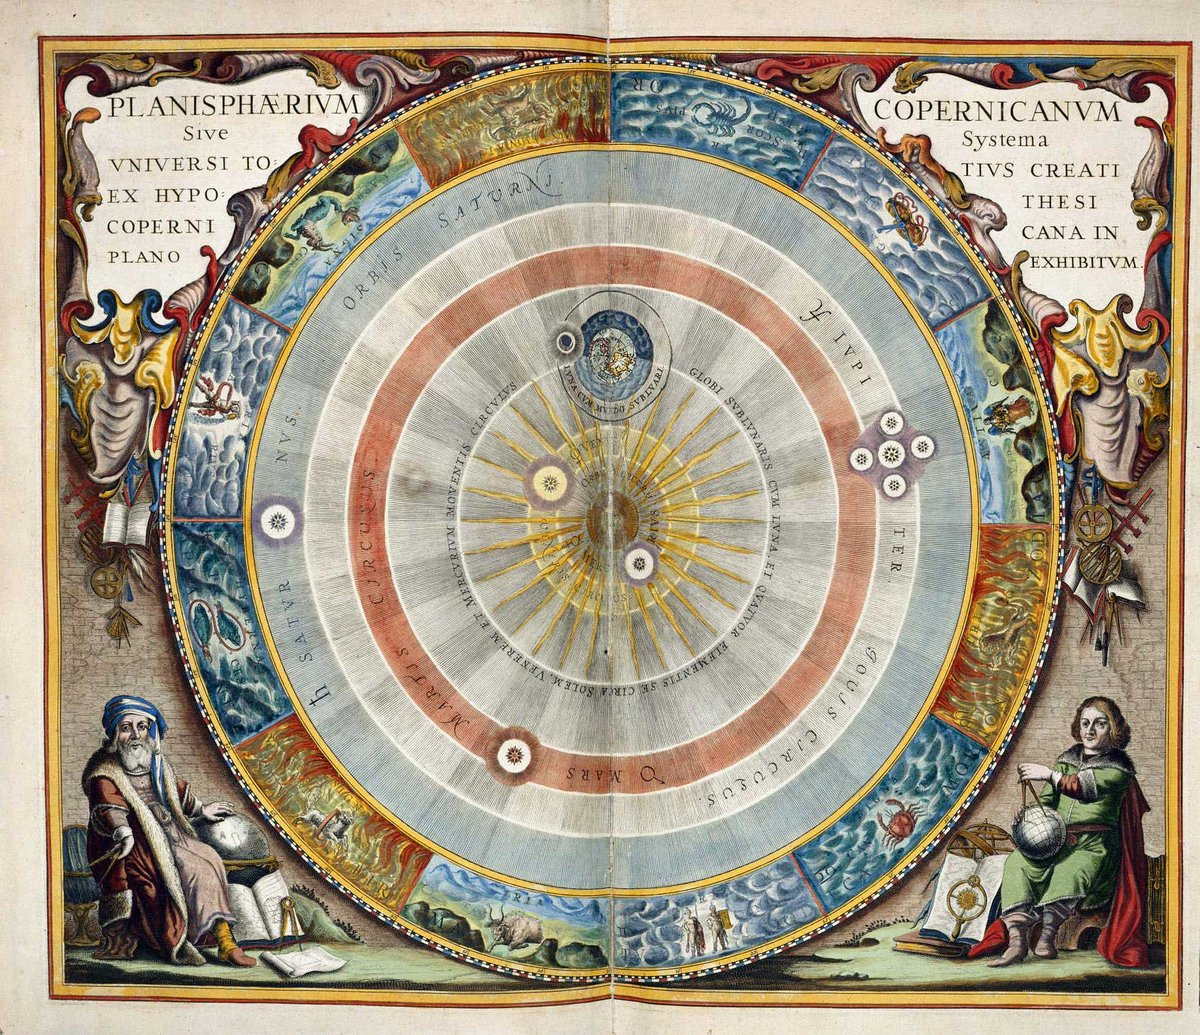 A beautiful hand-colored engraving from the 1543 book 'On the Revolutions of the Celestial Spheres', by Nicolaus Copernicus.